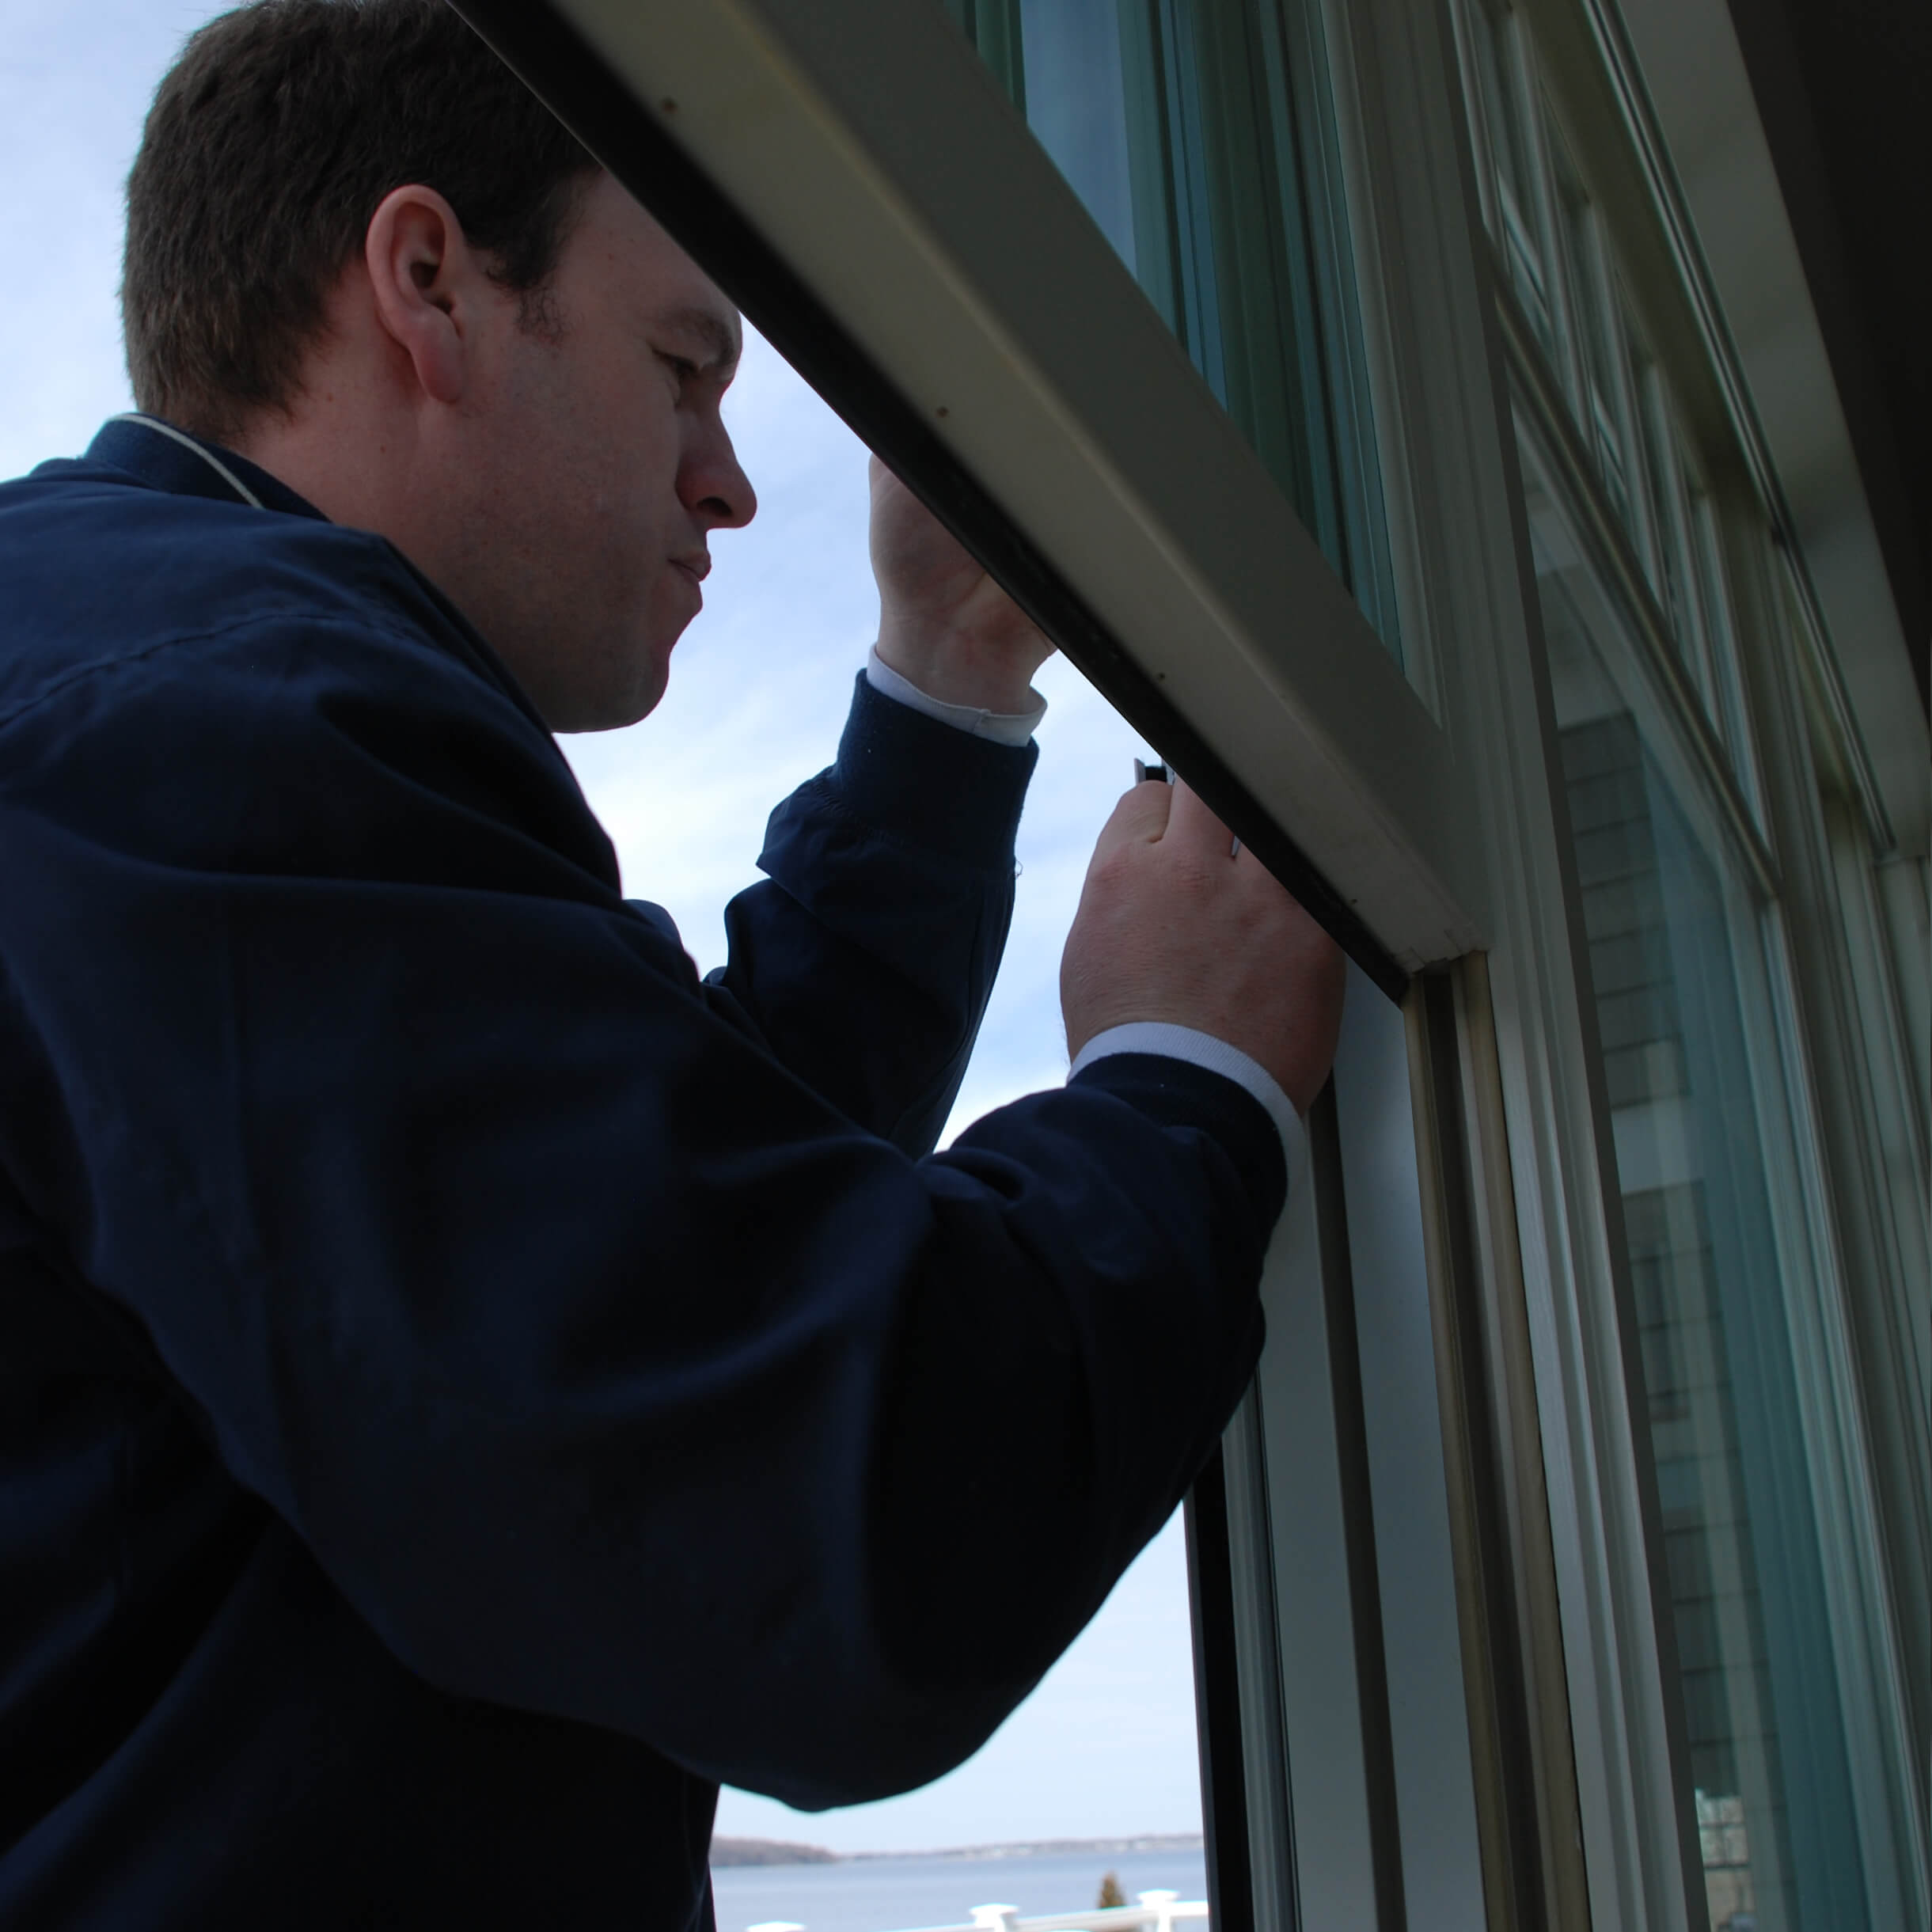 Photo of a window installer